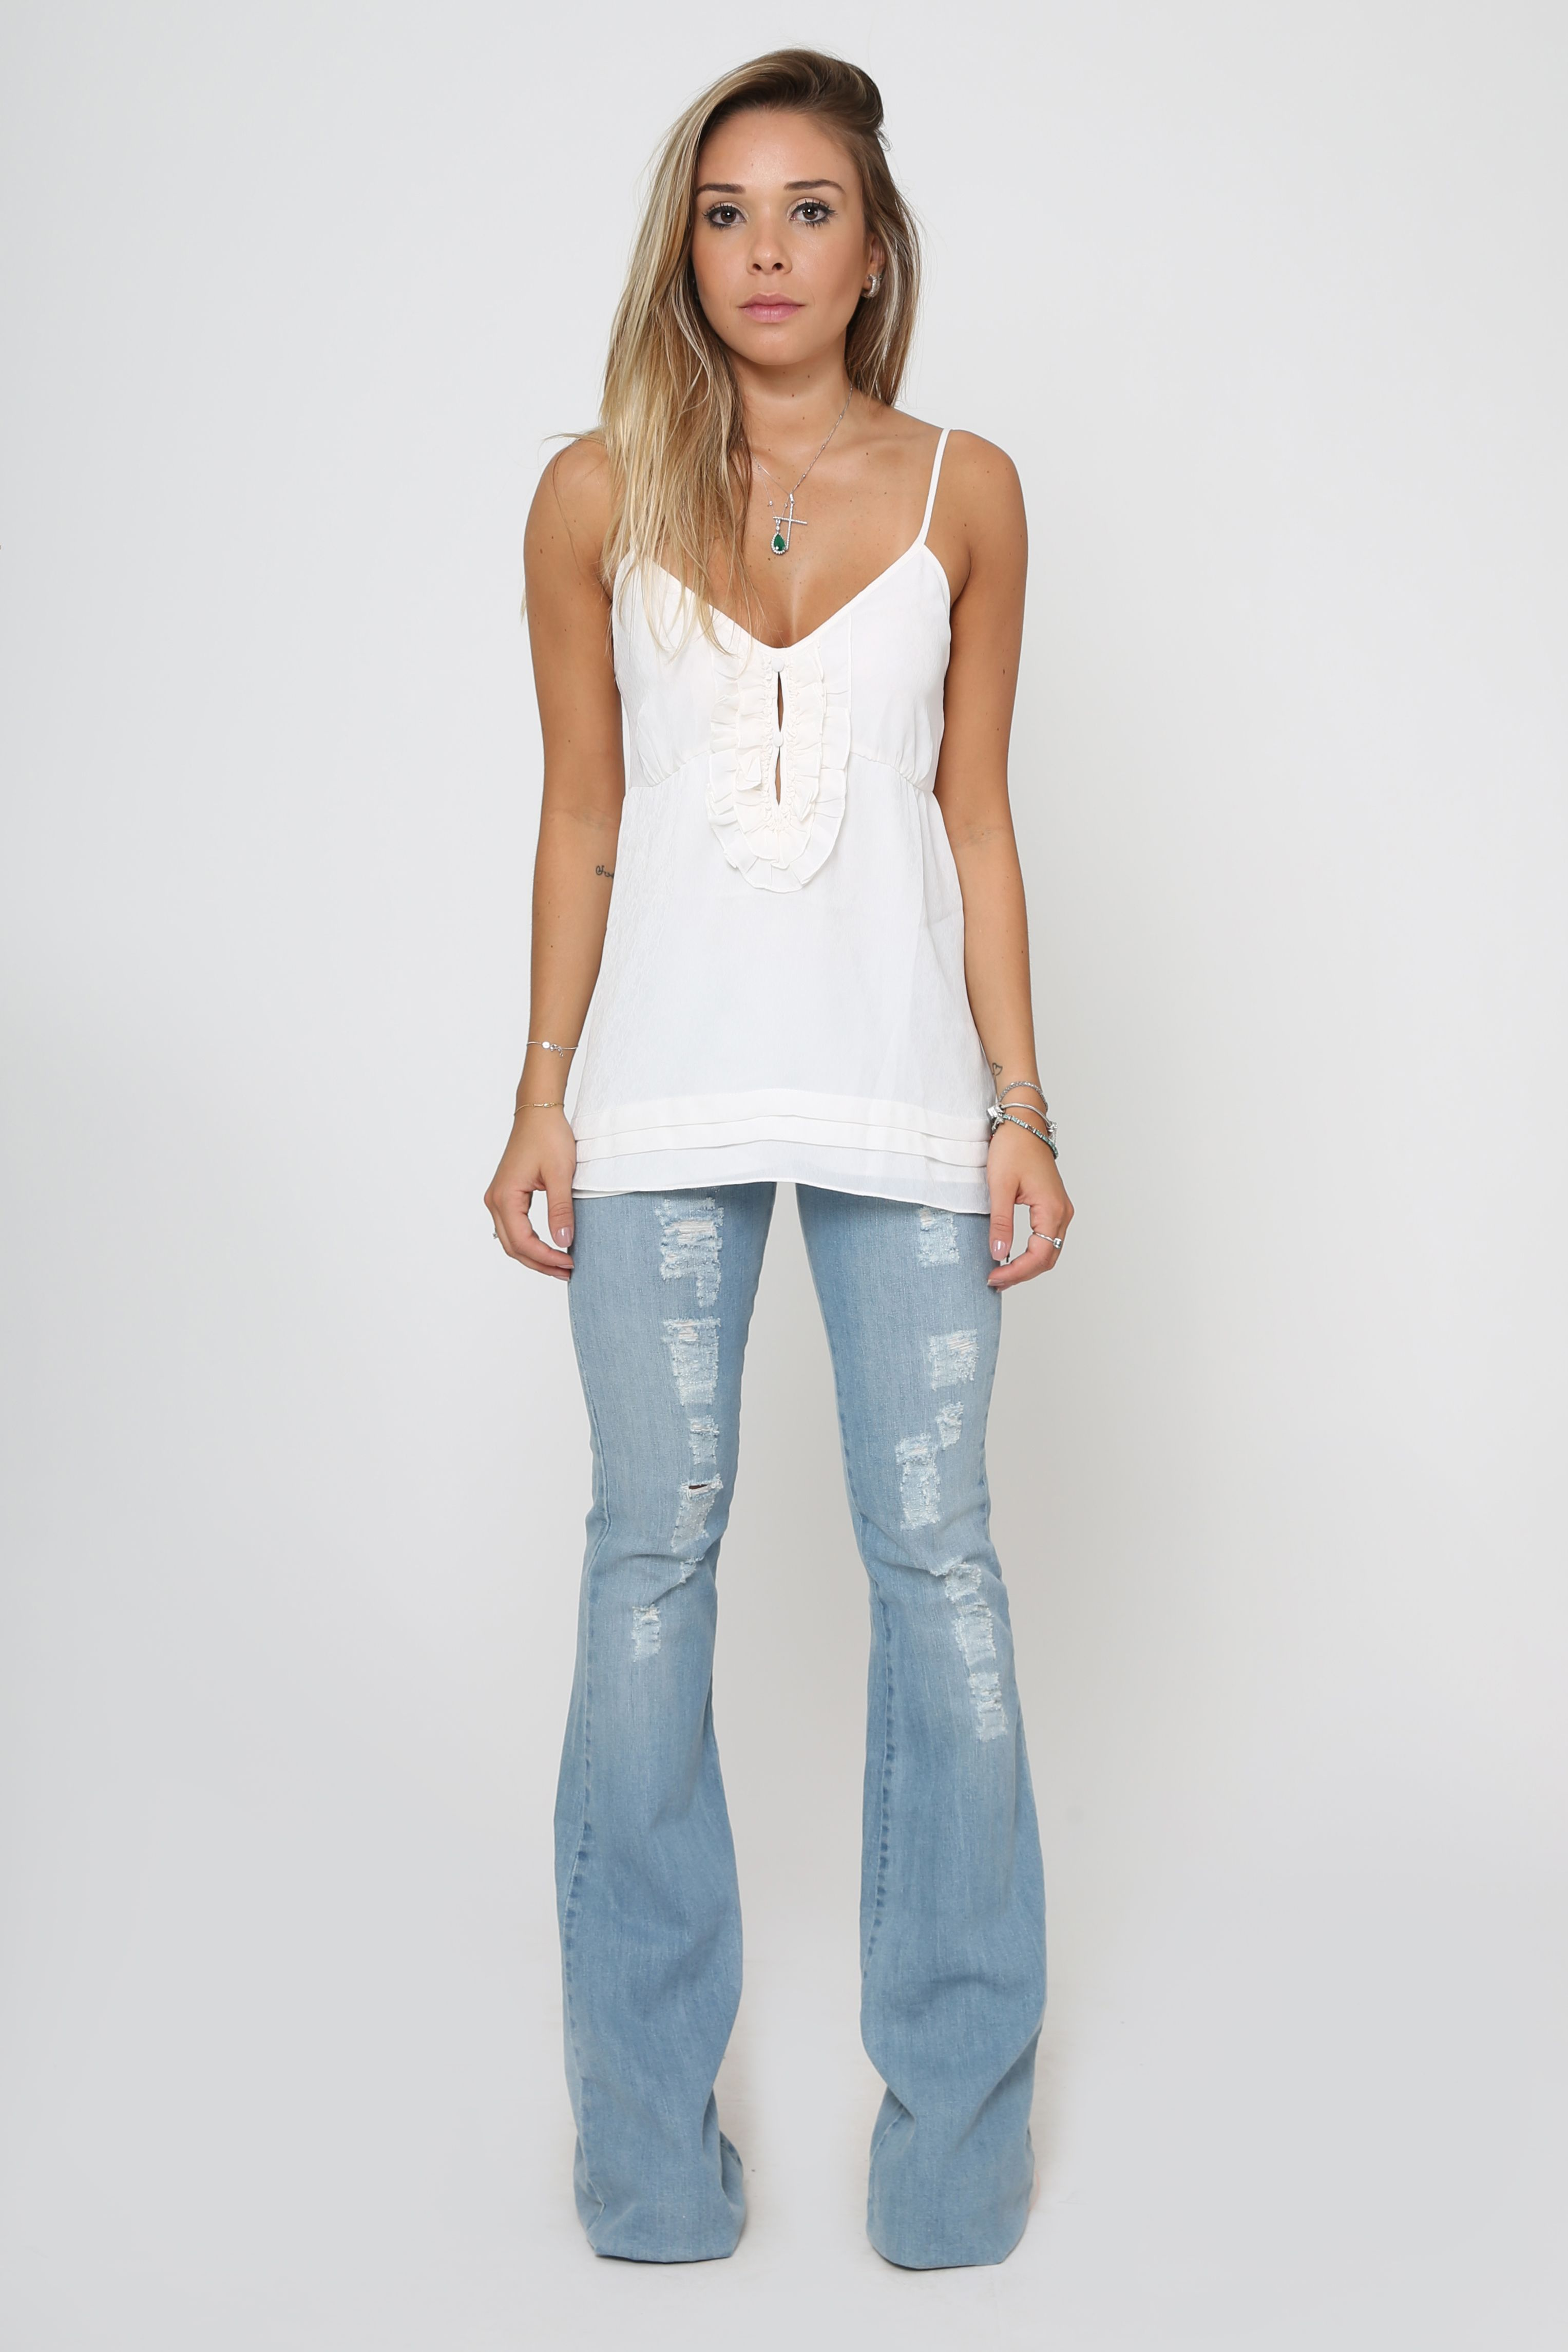 c68d30f0f CALÇA JEANS DESTROYED FLARE | My Style | Pinterest | Jeans, Pants and Flare  jeans